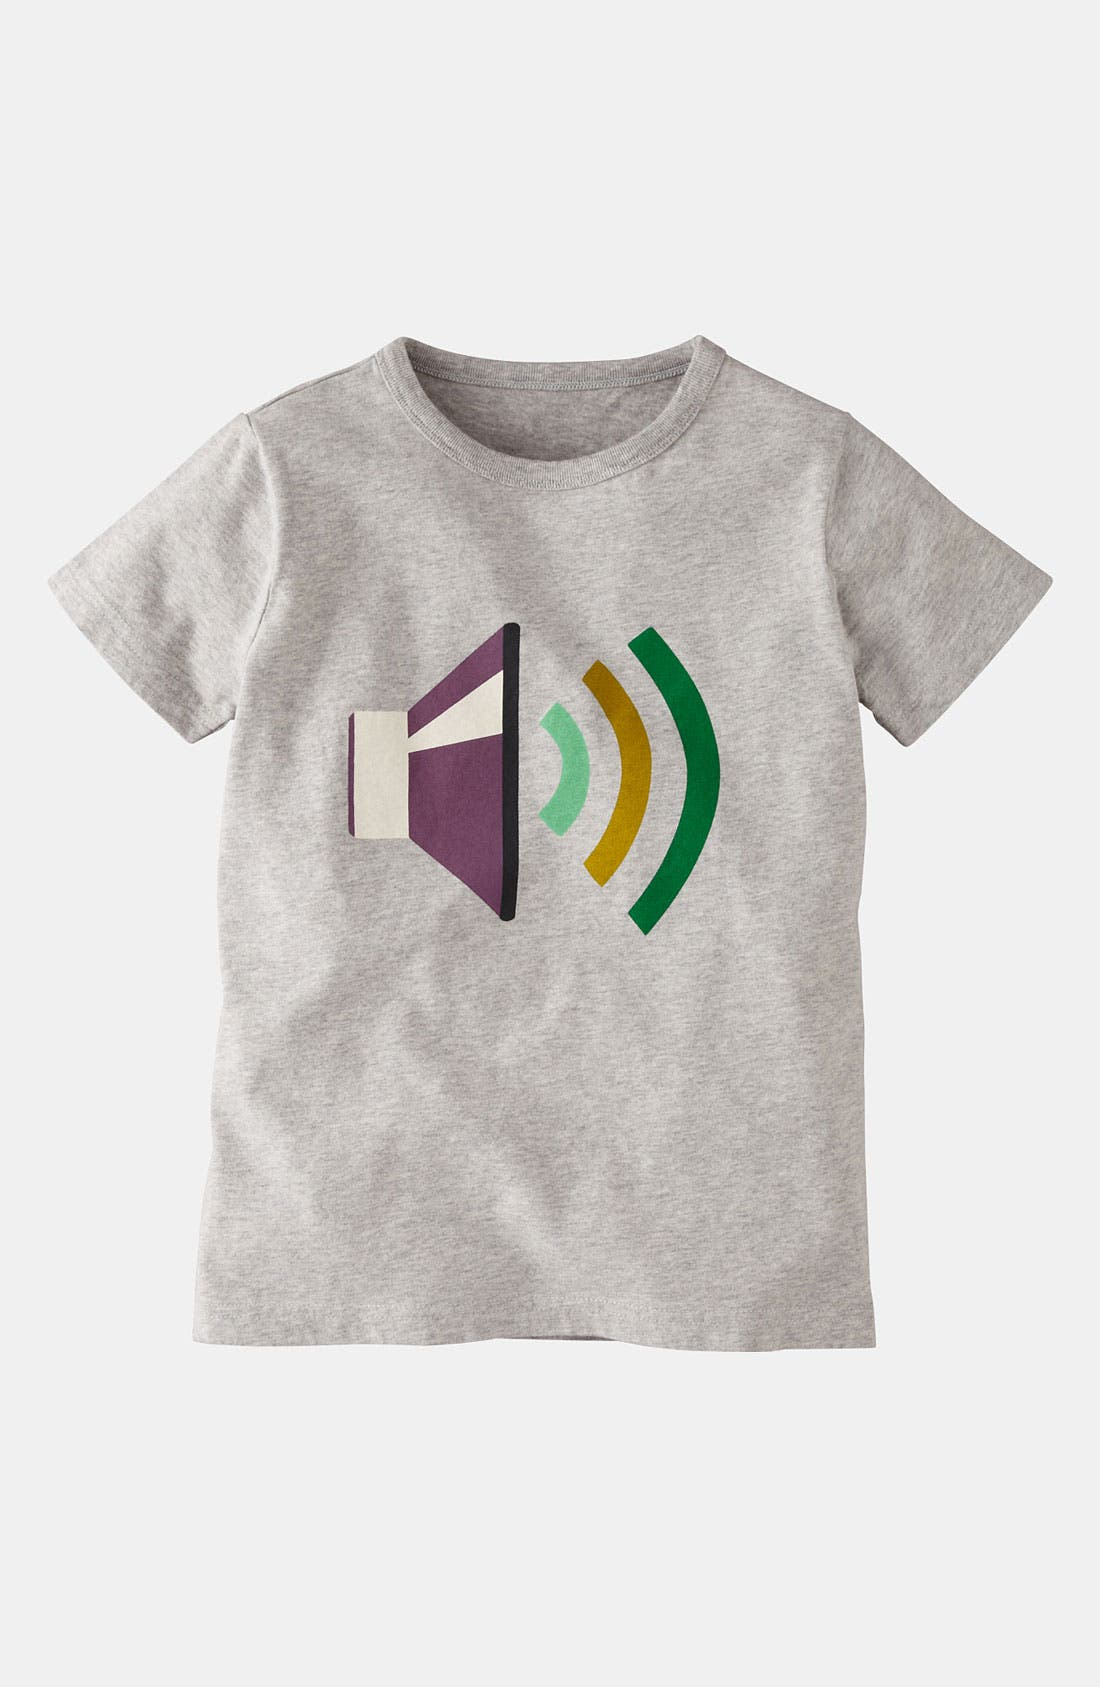 Main Image - Mini Boden Graphic T-Shirt (Toddler, Little Boys & Big Boys)